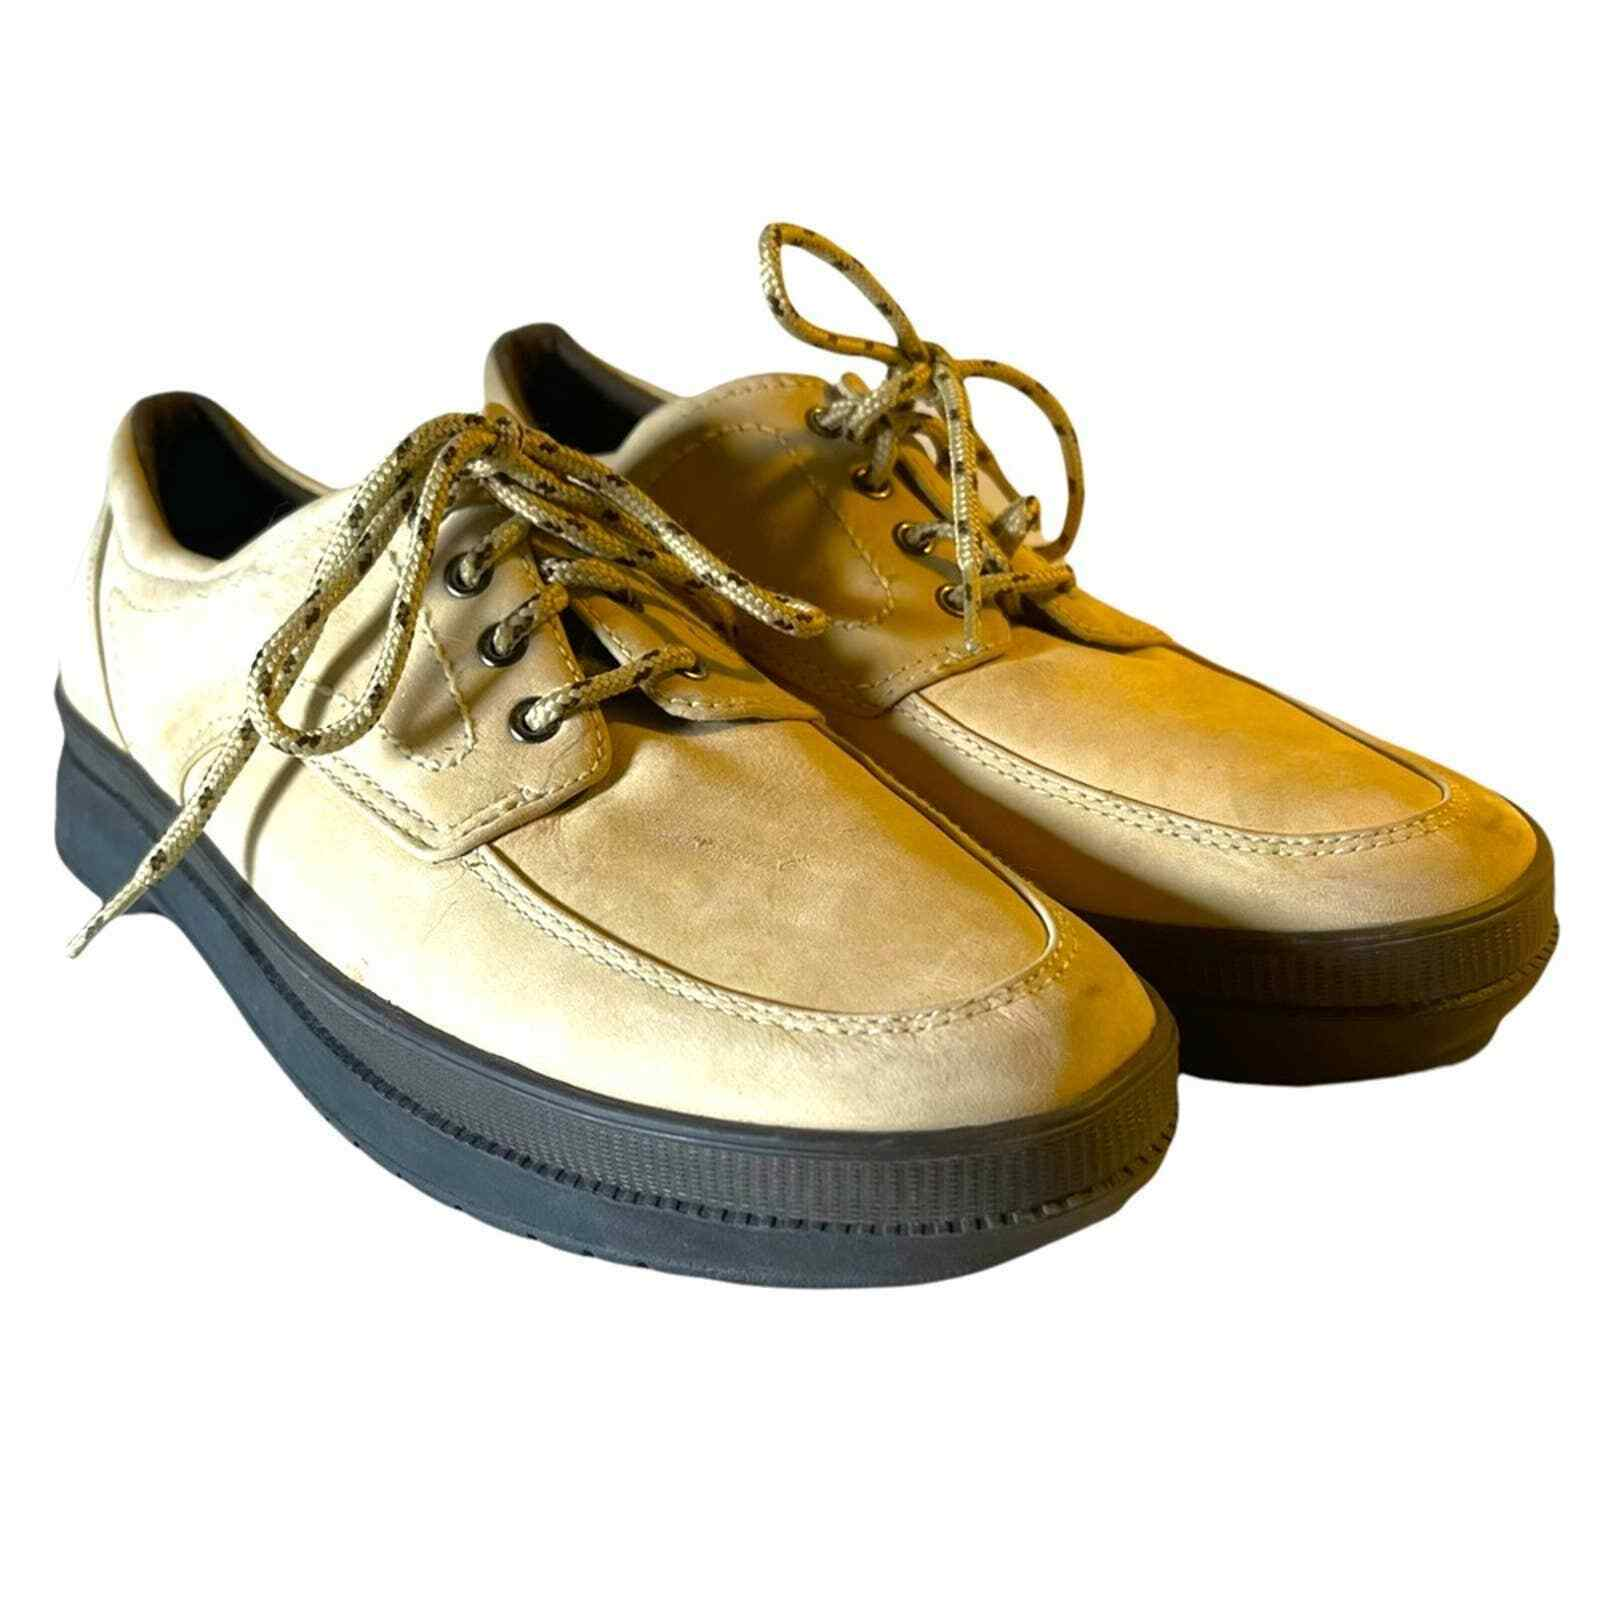 Easy Spirit Tan Lace Up Shoes Size 8.5M - $24.75